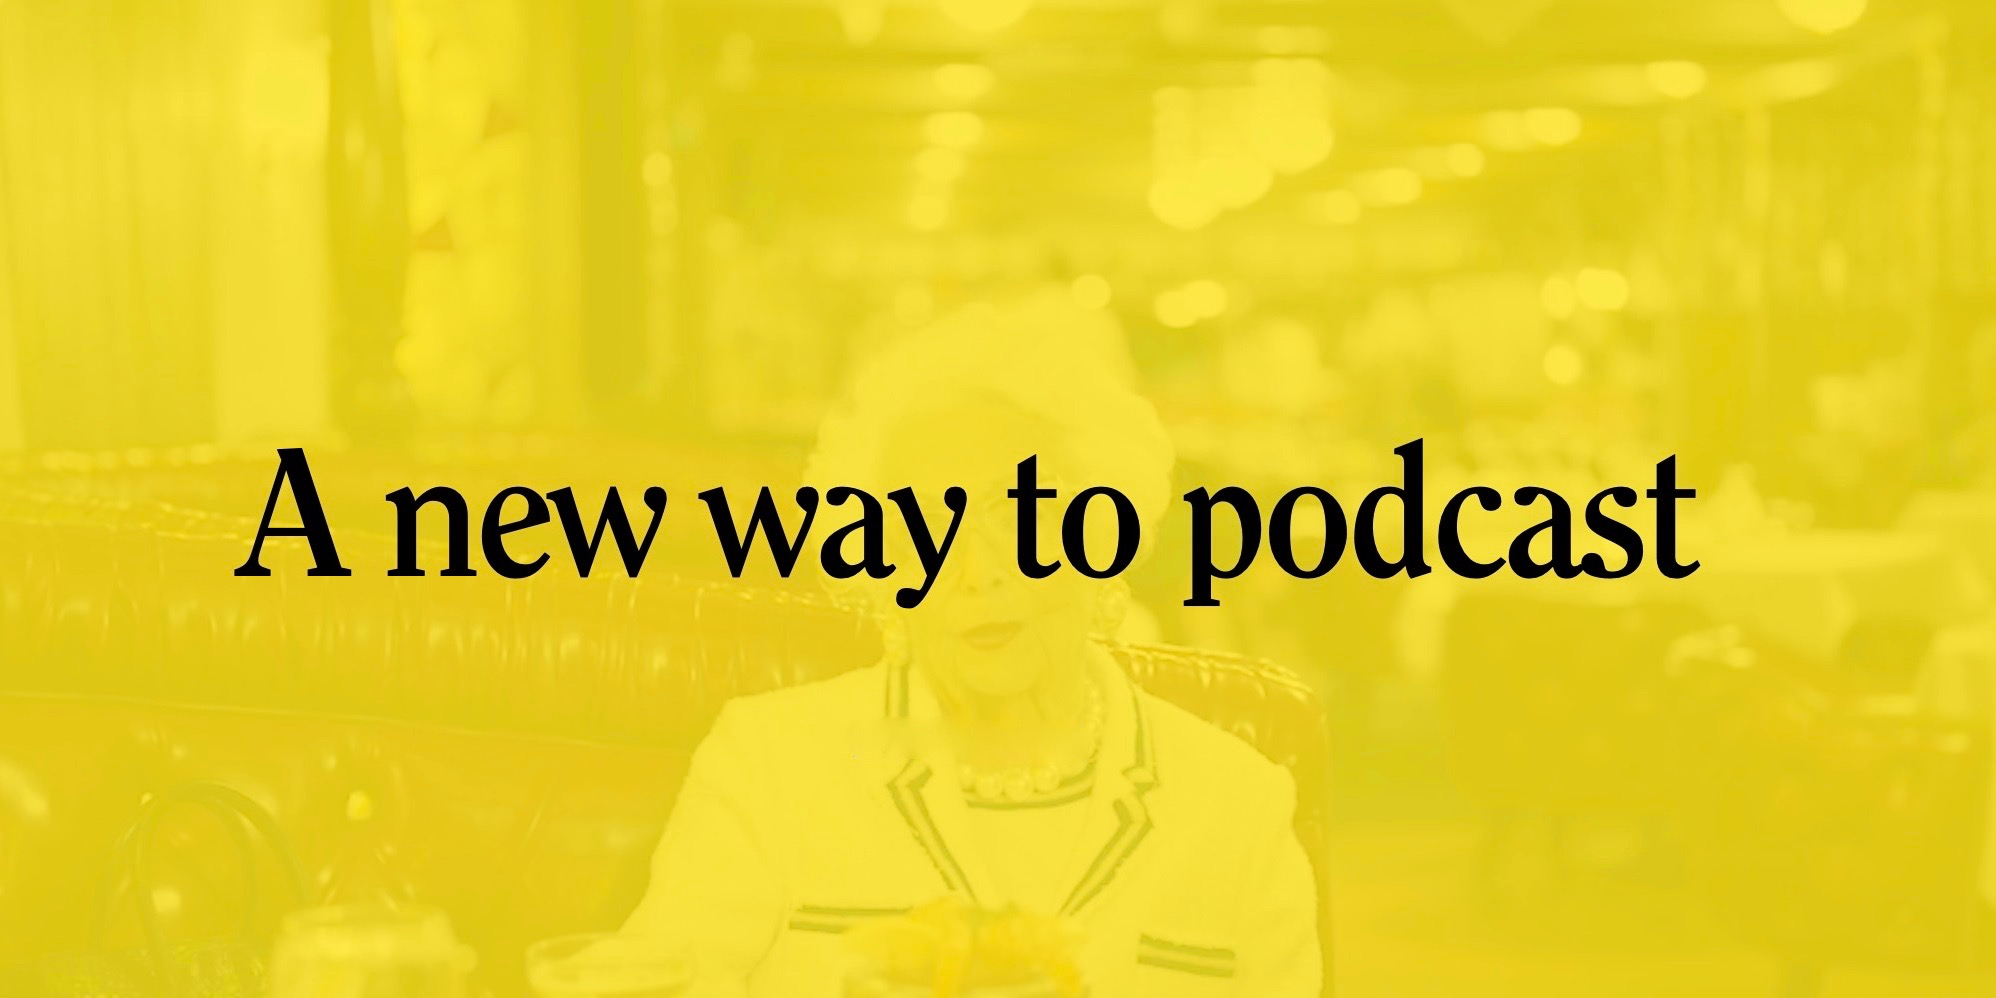 Luminary launching to take on Apple Podcasts, but major shows missing from the platform